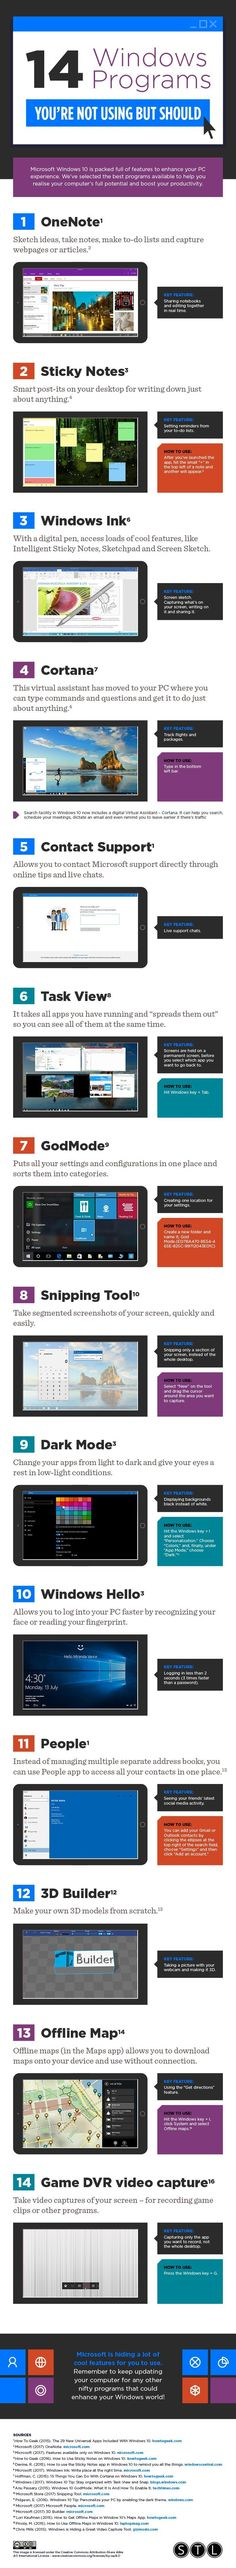 14 #Windows Tools to Help You Run Your #Business More Efficiently #Infographic